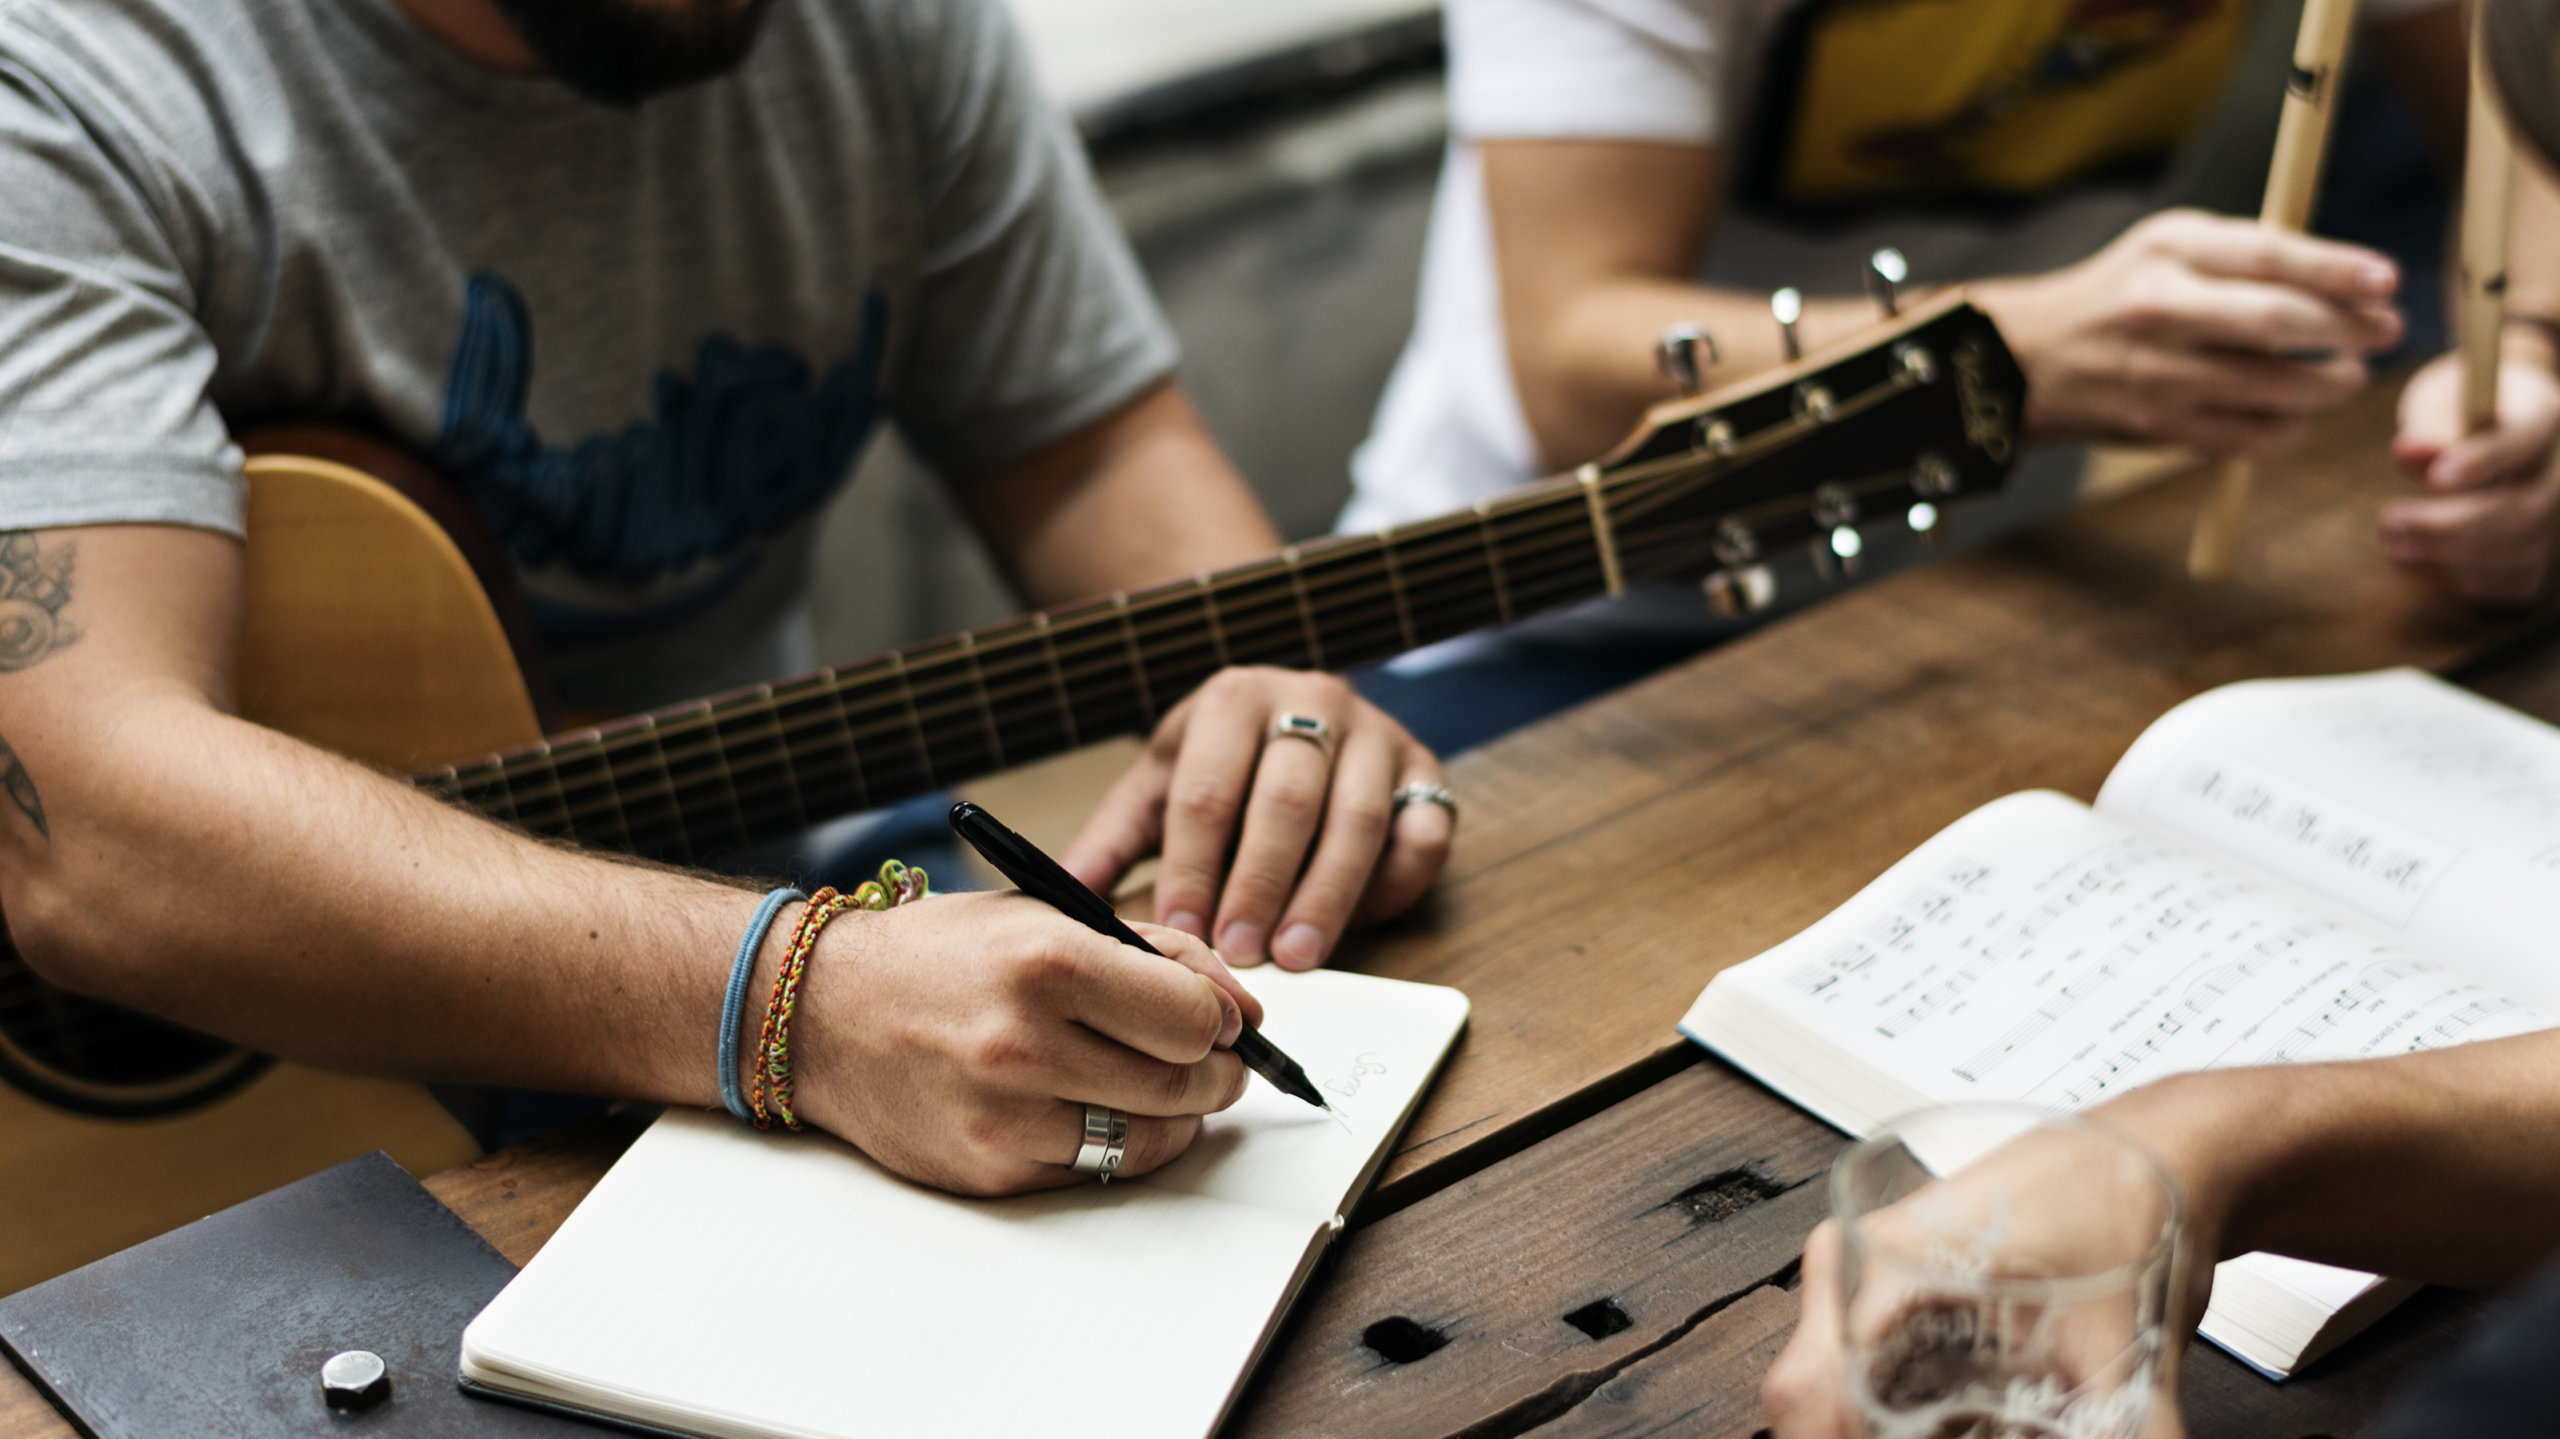 Songwriting 101: How the pros compose by improvising